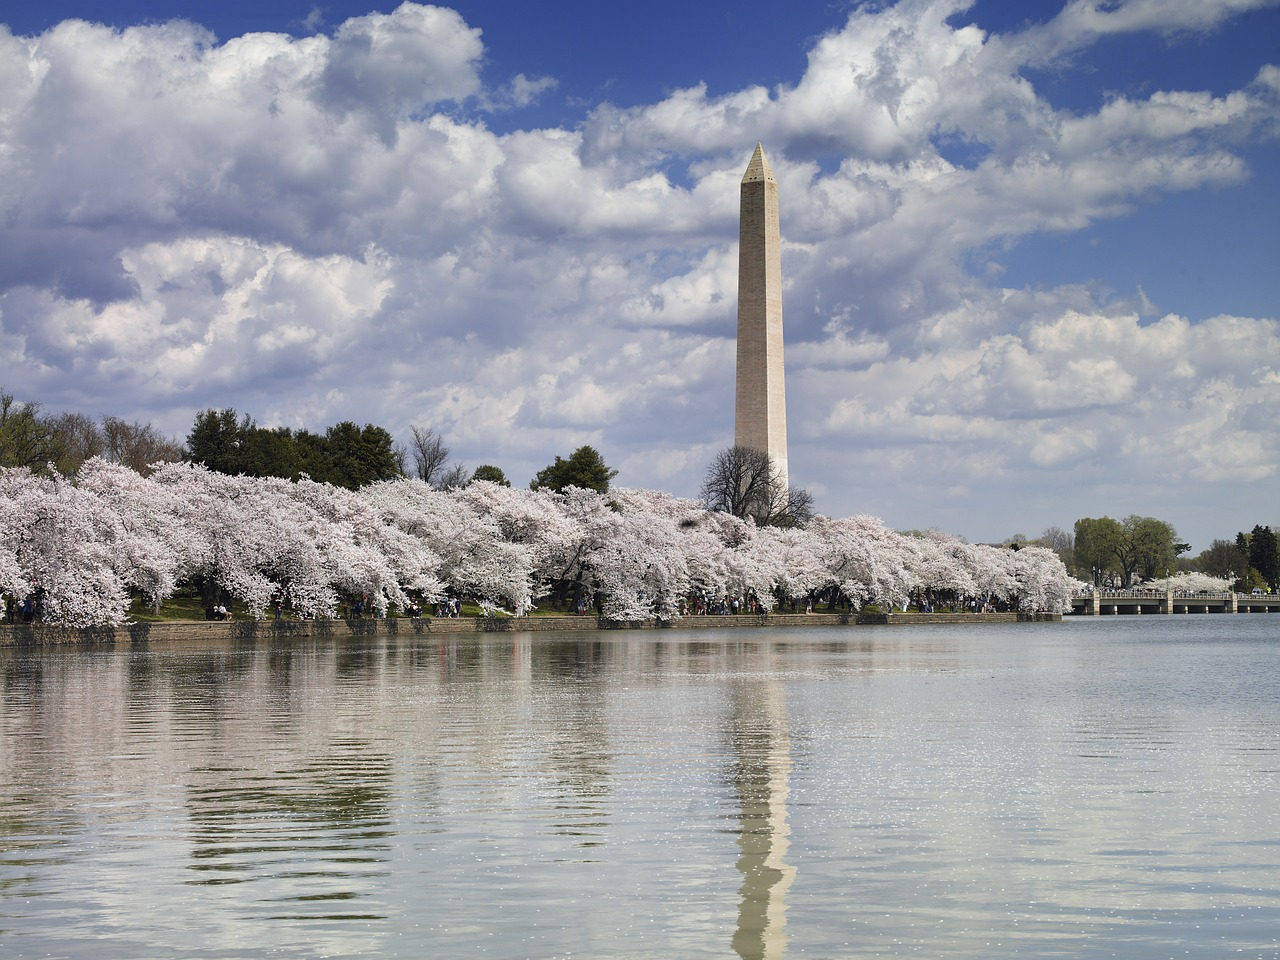 dc 10 Most Popular Event Cities To Host A Speaker Event